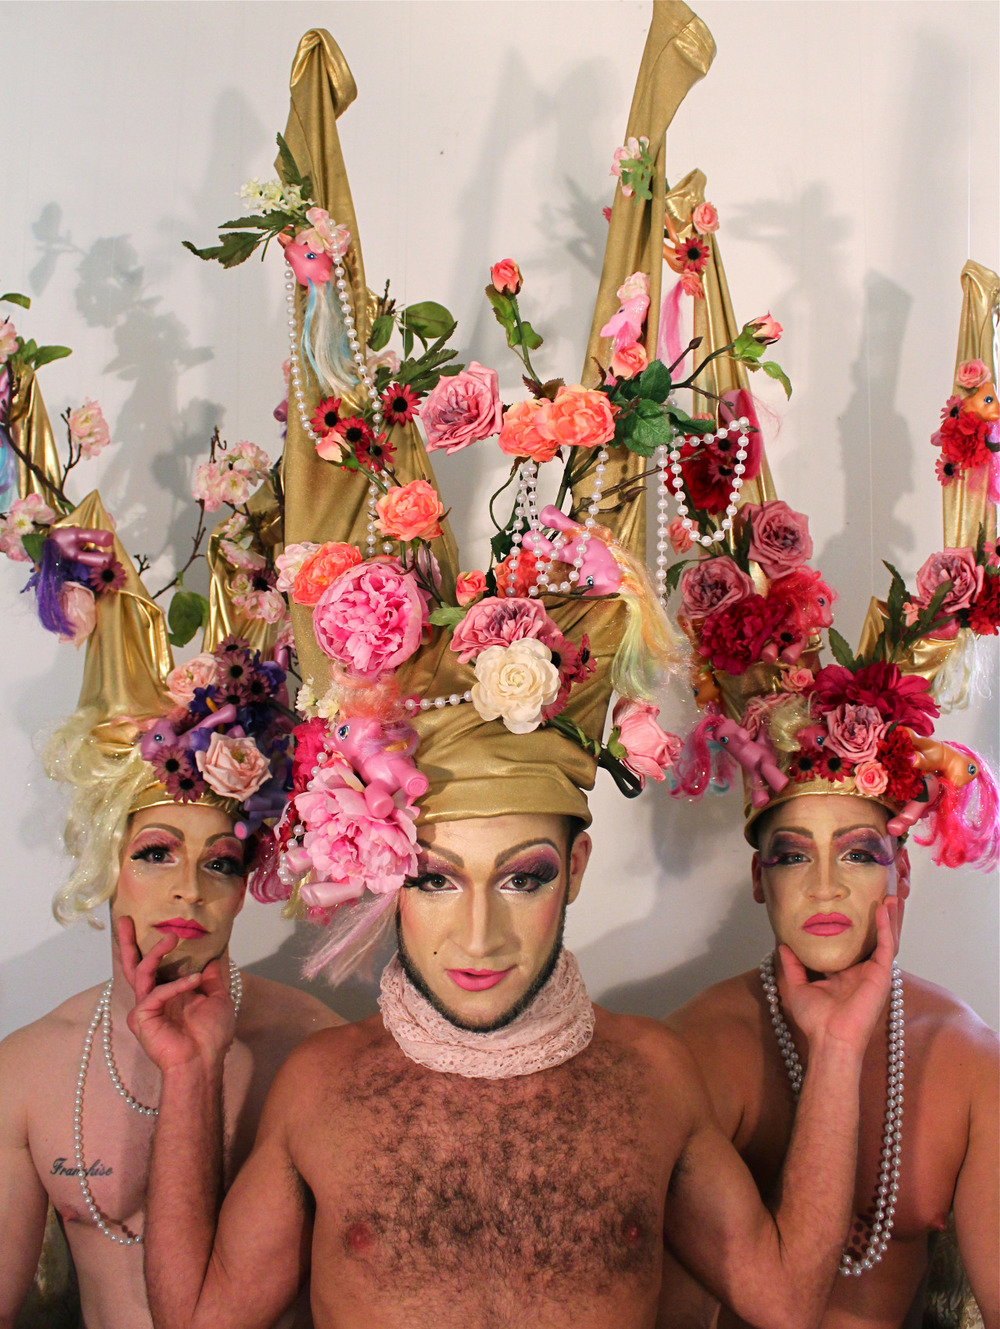 JD Raenbeau (AP15) is showing work in Queer WAH opening this Friday, October 9 at the Williamsburg Art and Historical Center.